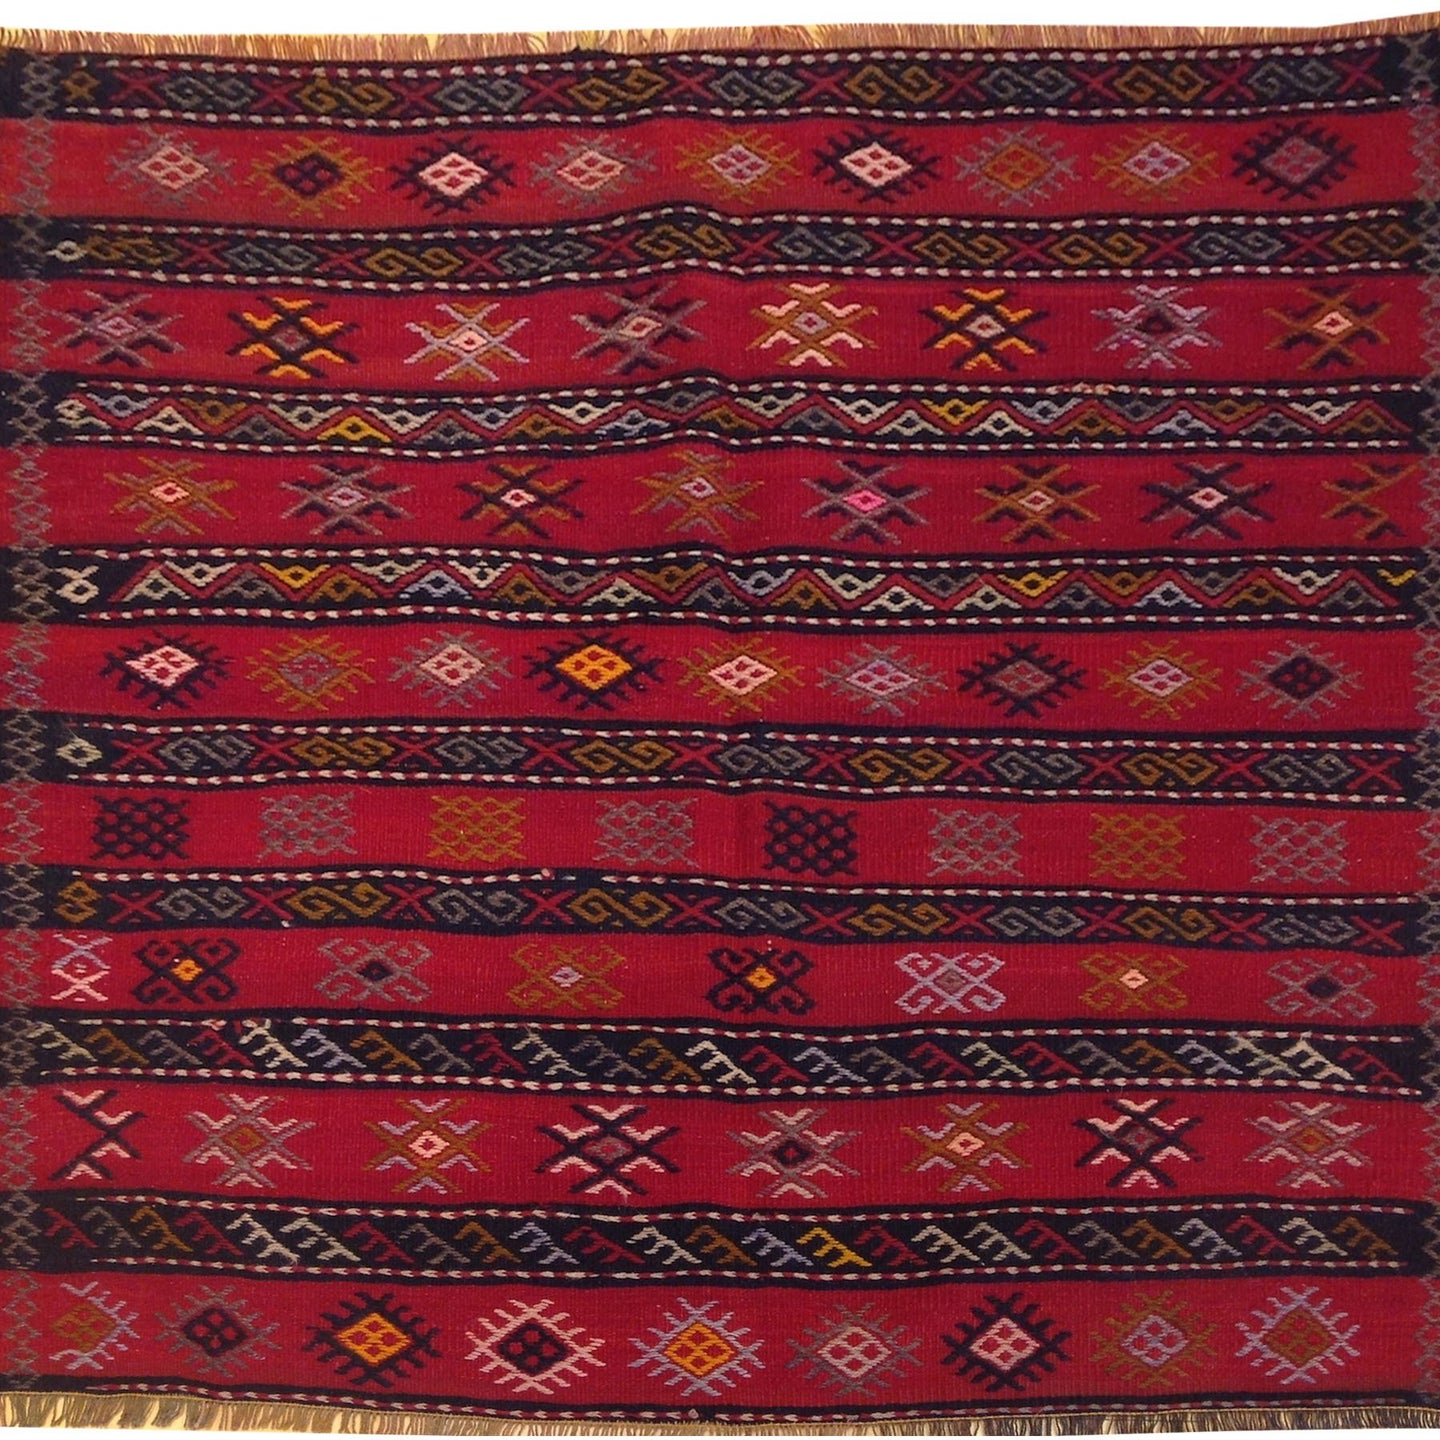 Hand-Woven Square Tribal Turkish Kilim Handmade Wool Rug (Size 3.11 X 3.11) Brral-5220